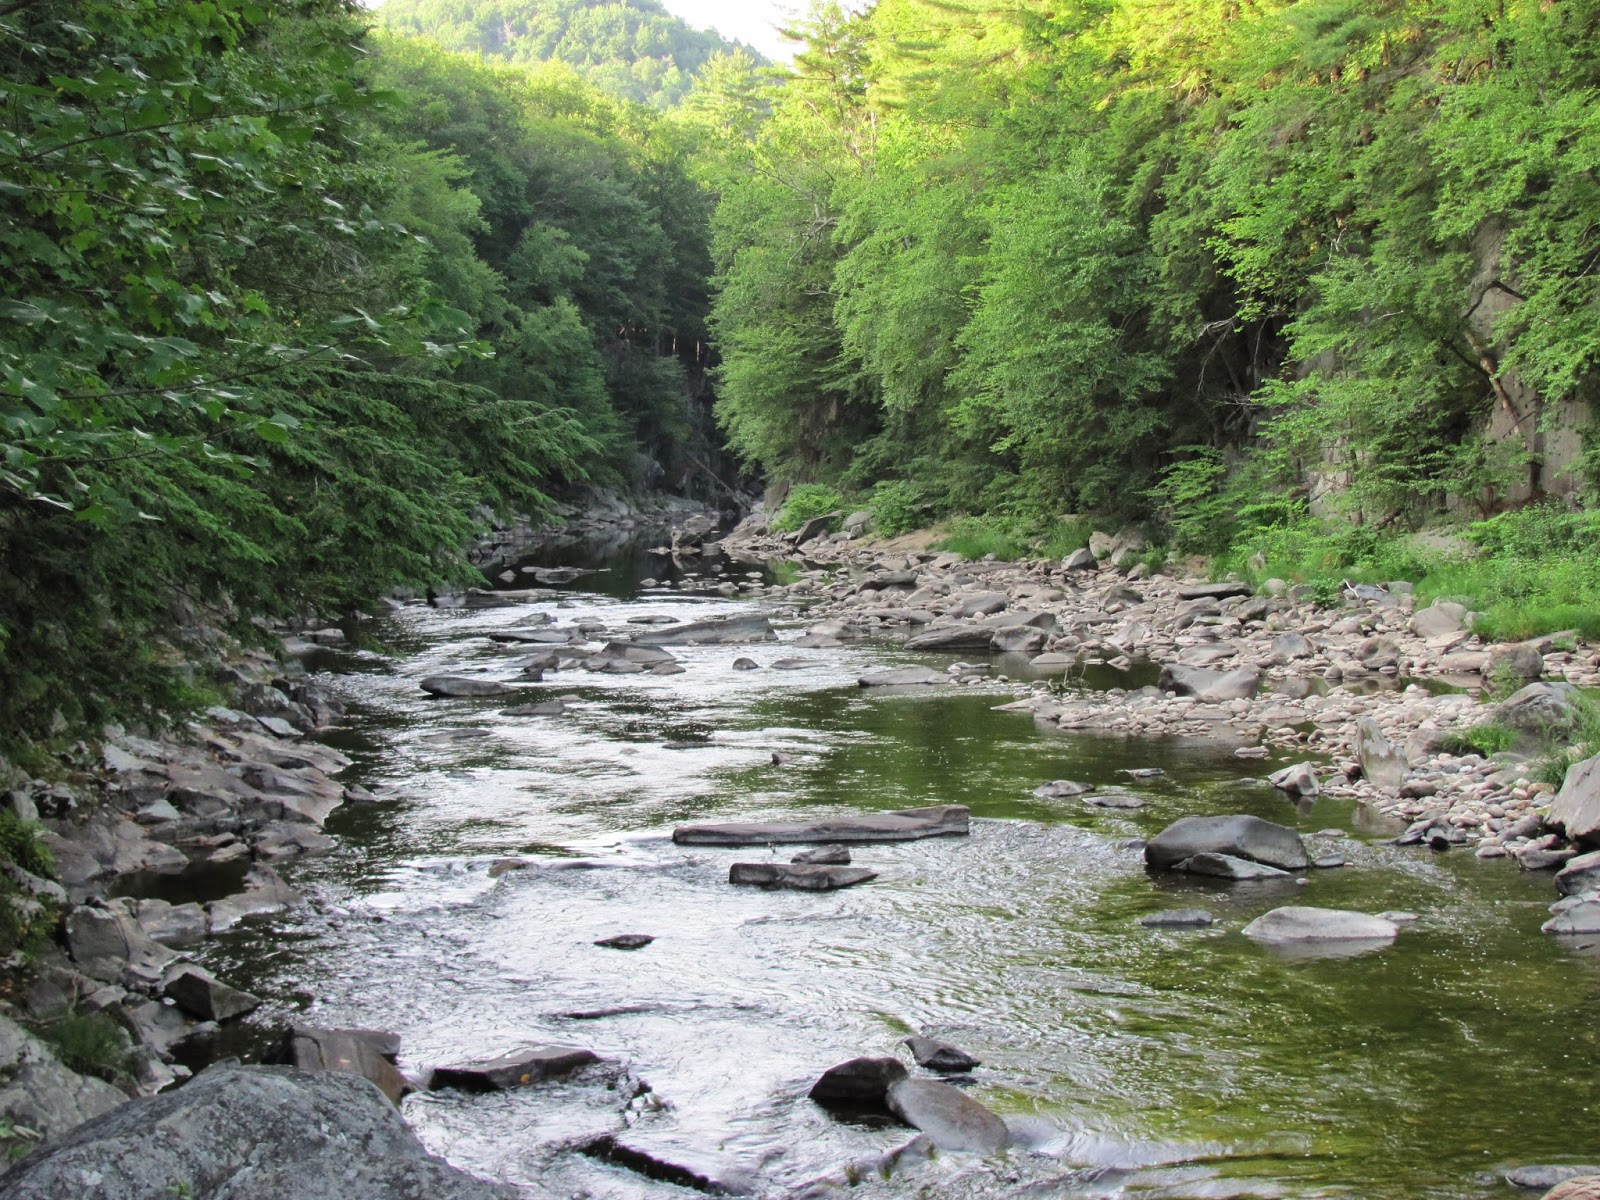 Millers swift and eb fly fishing forum welcome to trout for Eastern fly fishing magazine